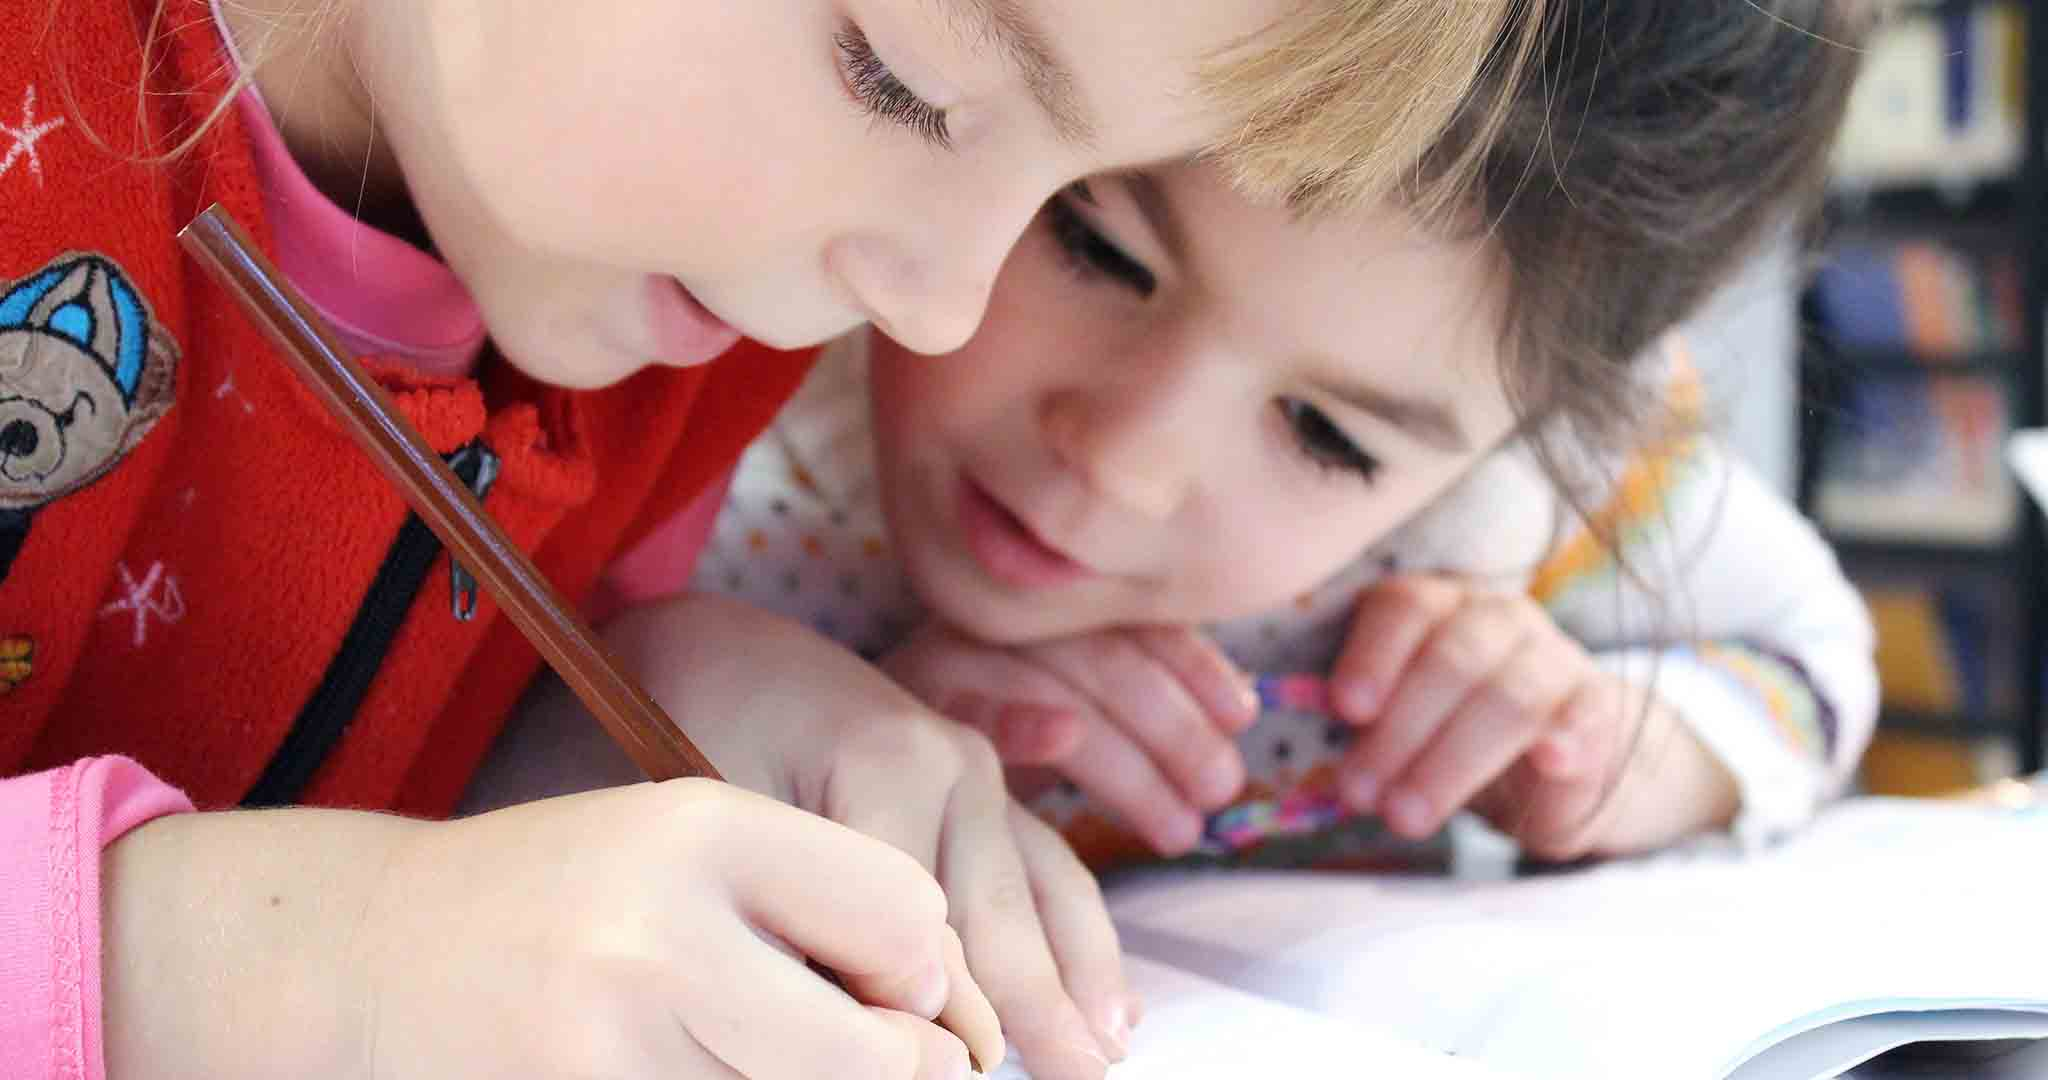 children cute drawing student stock photos 1